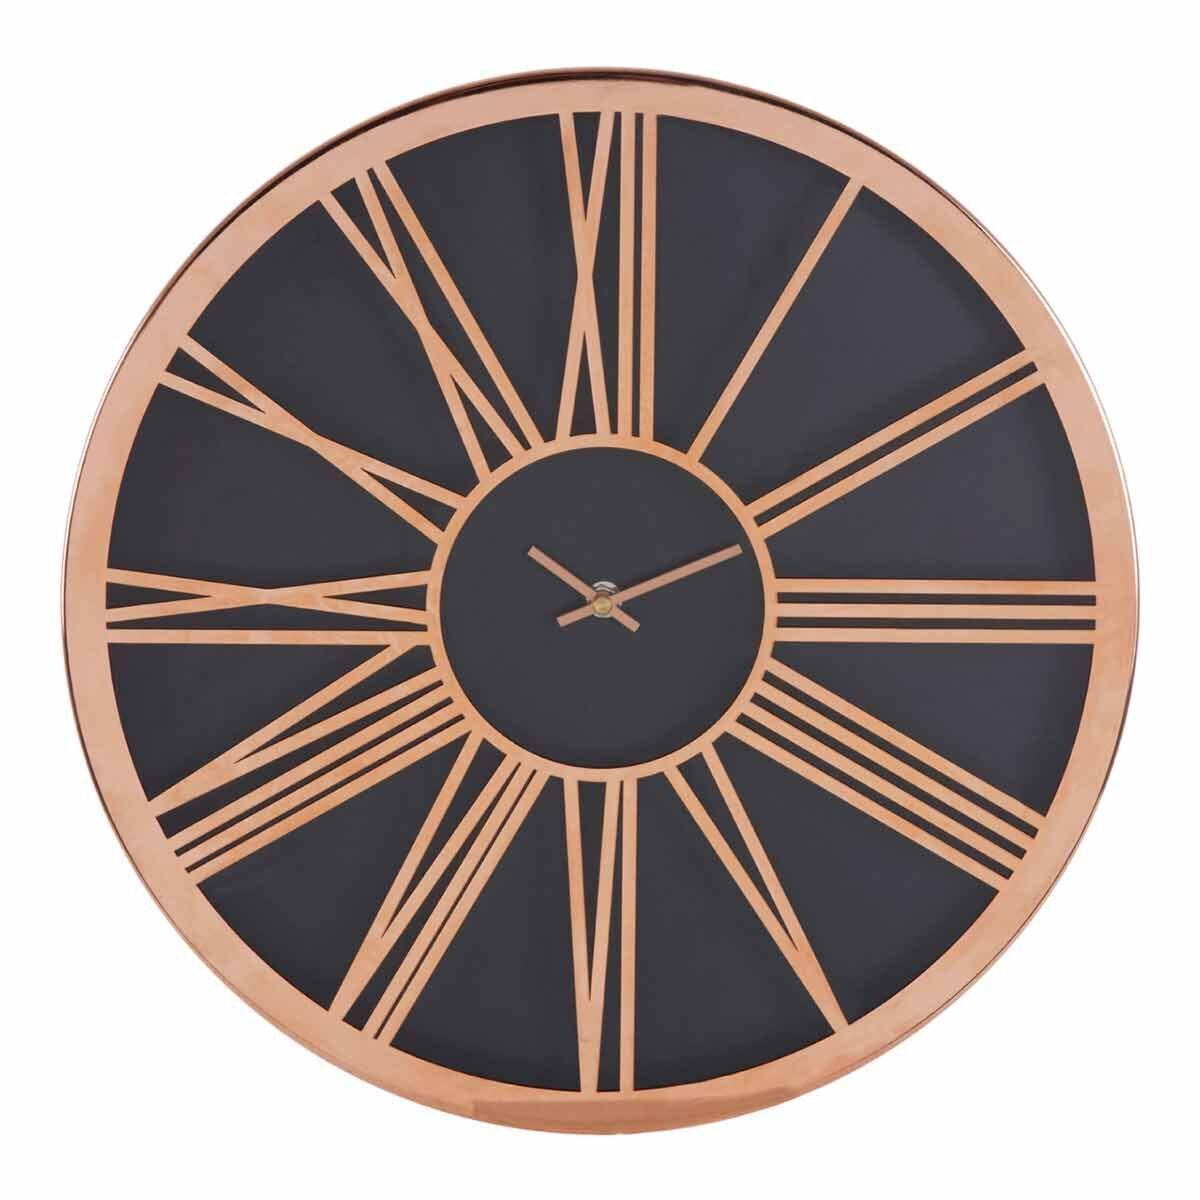 Premier Housewares Baillie Wall Clock 40cm Black/Rose Gold